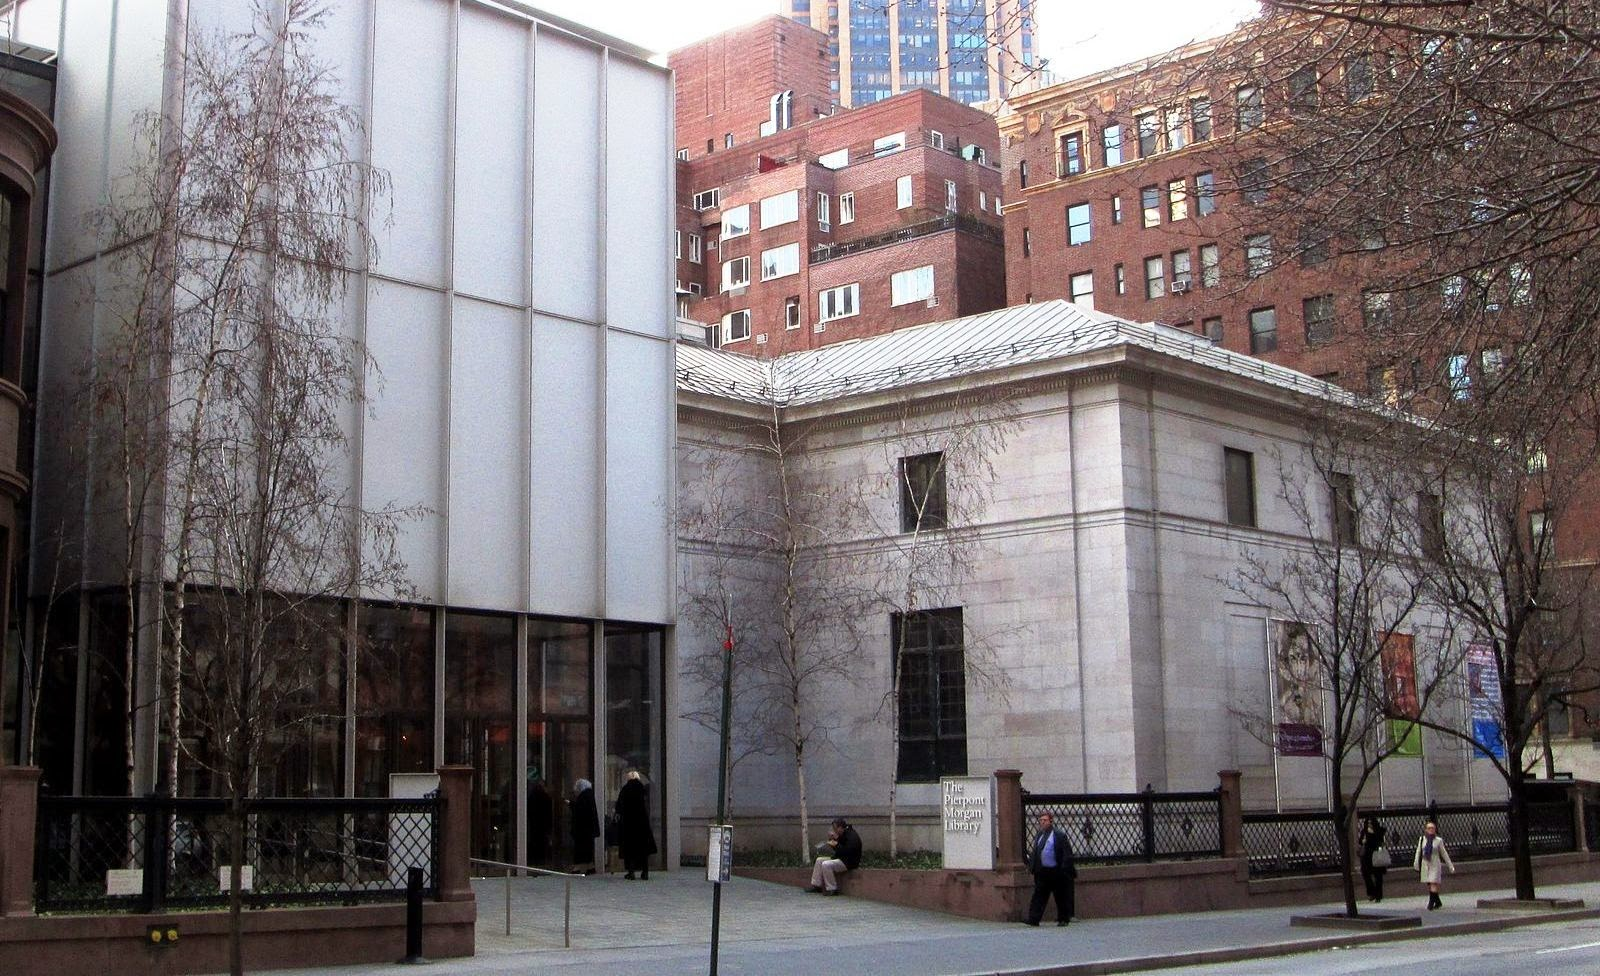 The Morgan Library & Museum em Nova York